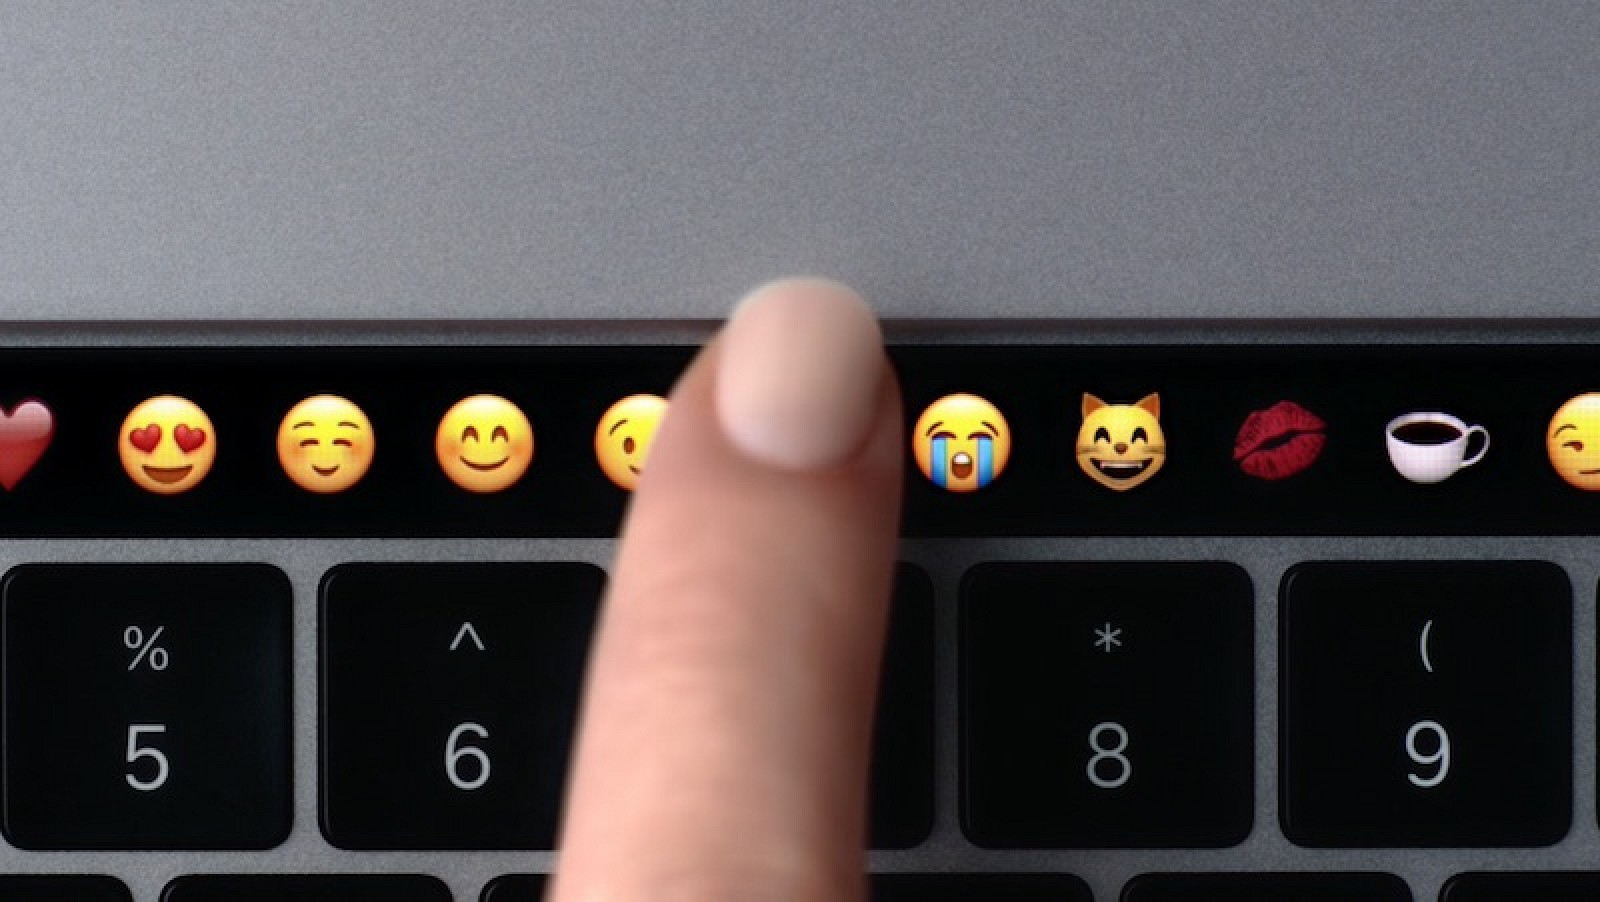 Former Apple Employee Thinks Touch Bar Shouldn't Be Forced on Users